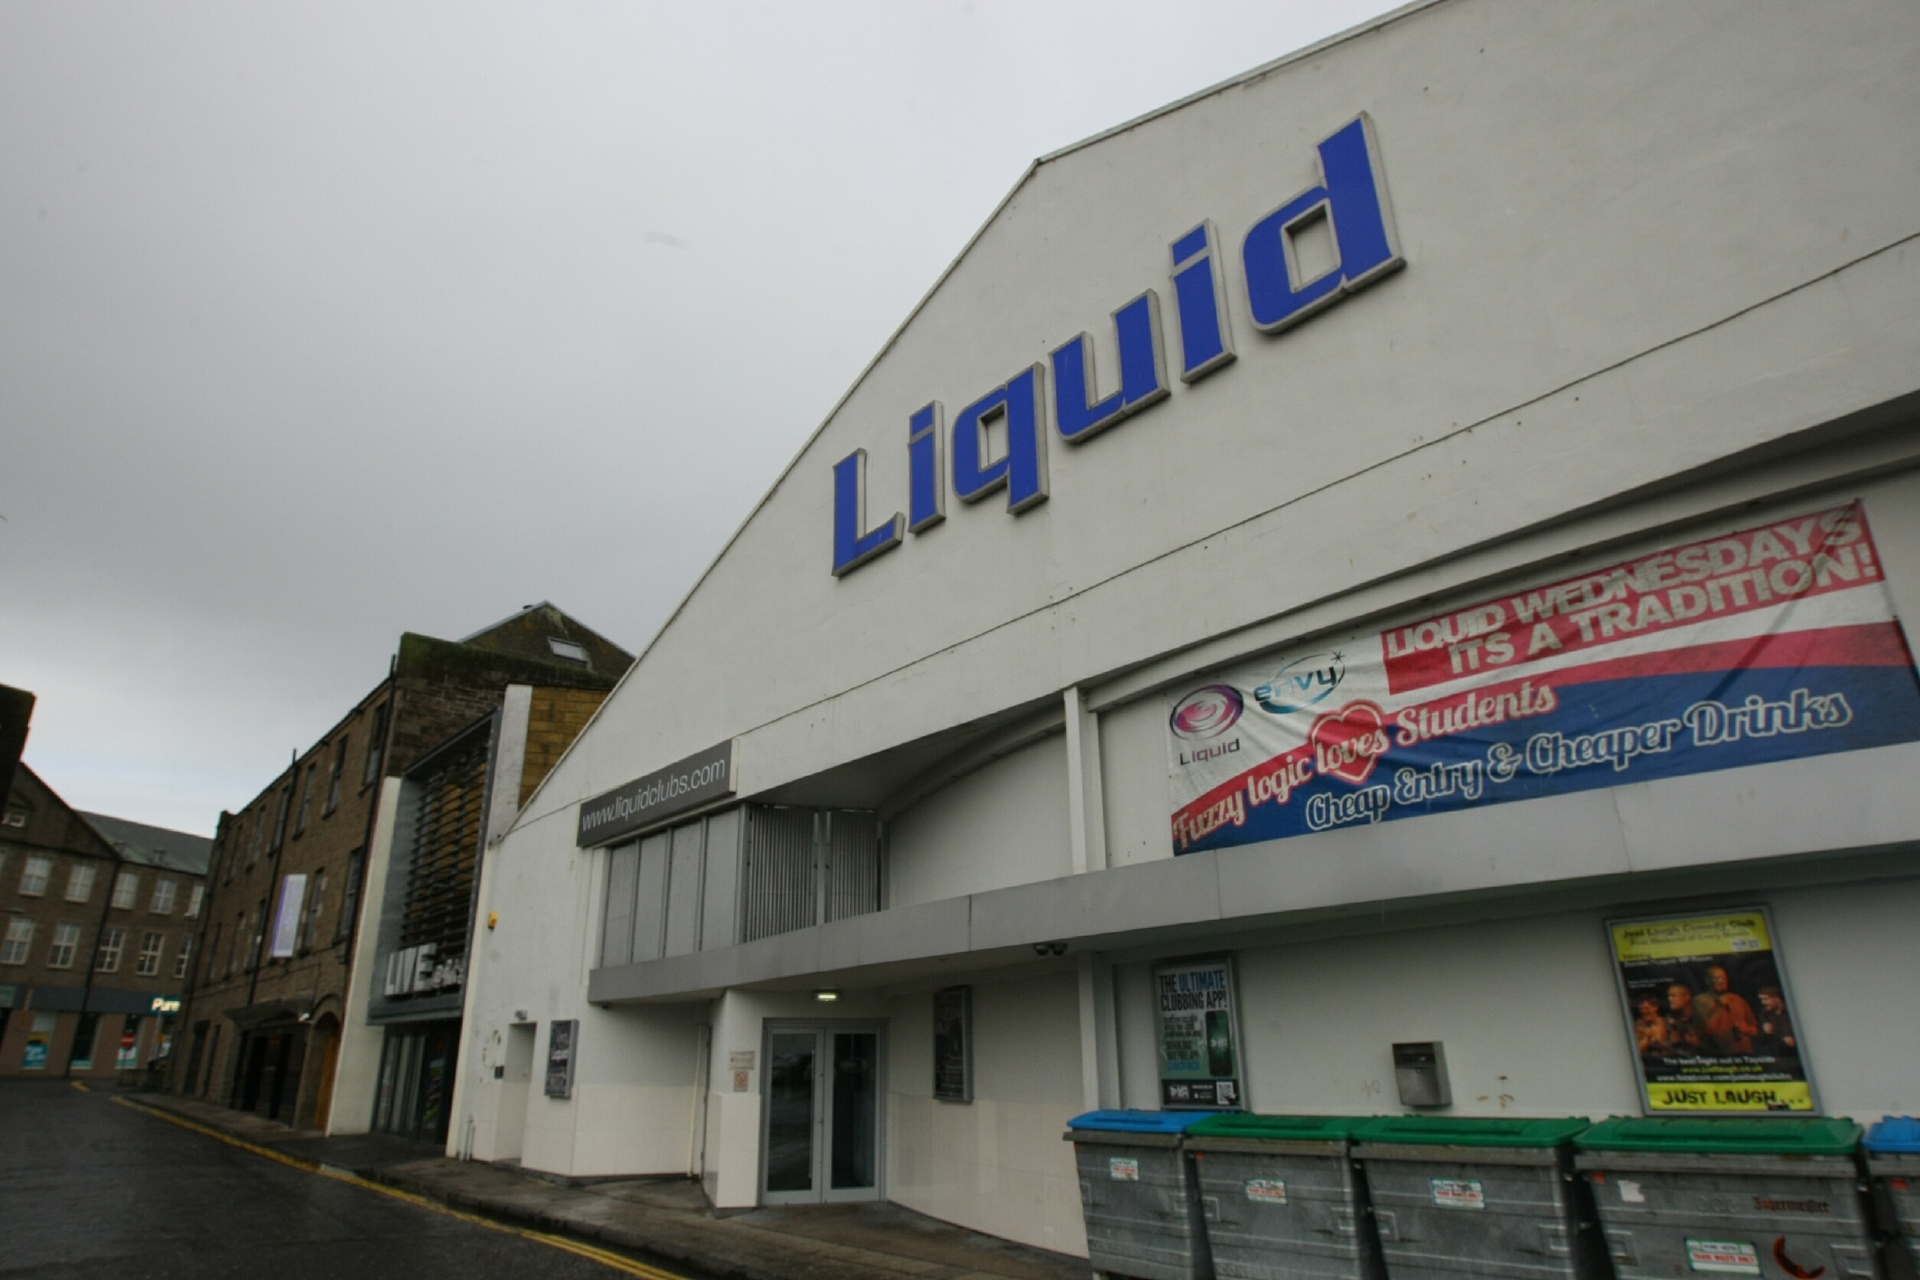 Liquid Nightclub in Dundee where the attacks took place